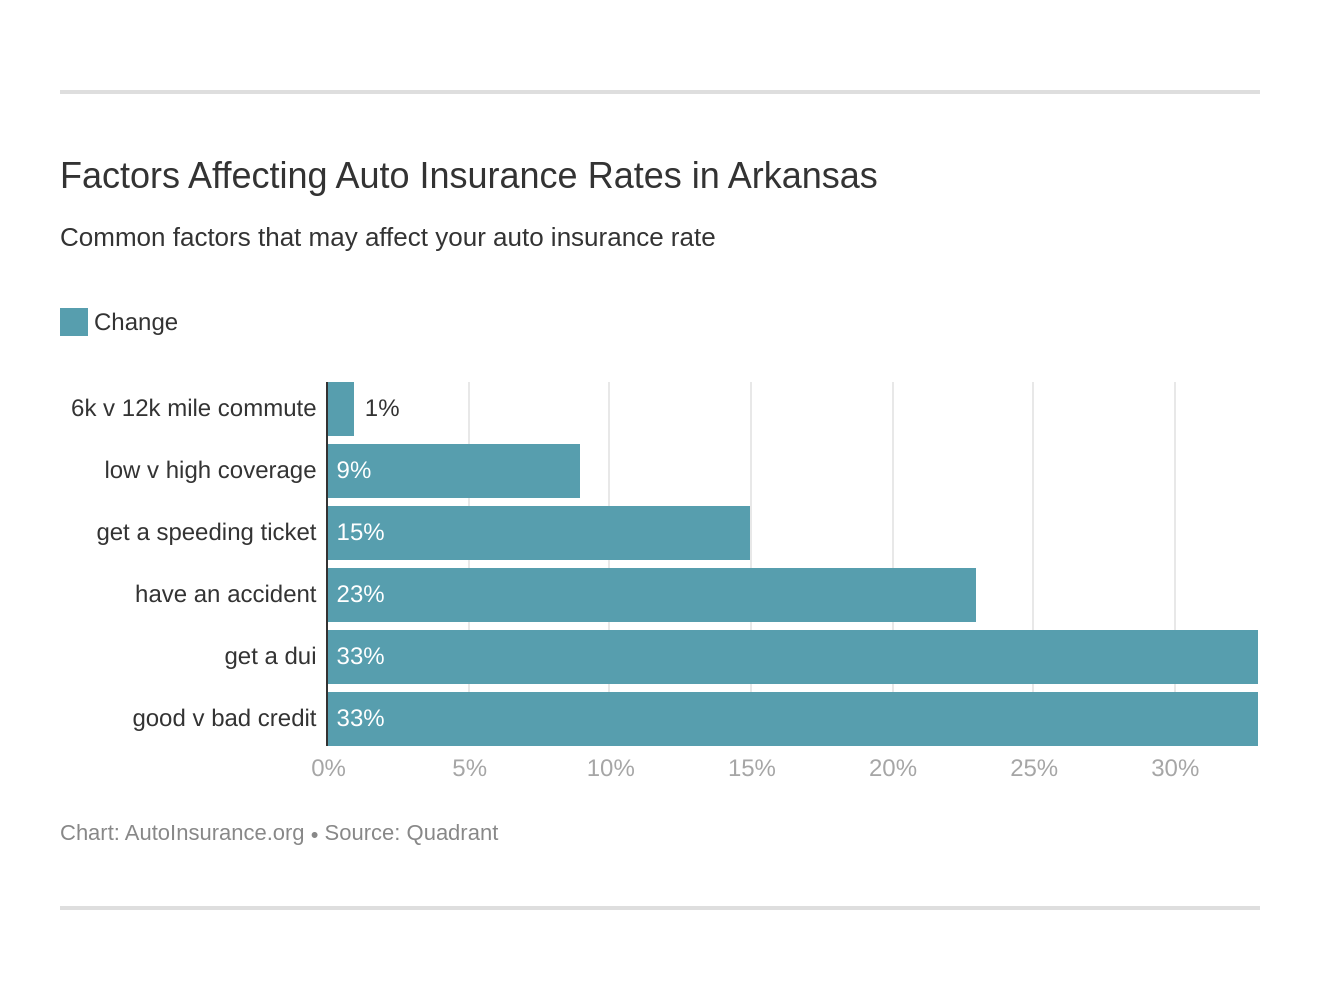 Factors Affecting Auto Insurance Rates in Arkansas